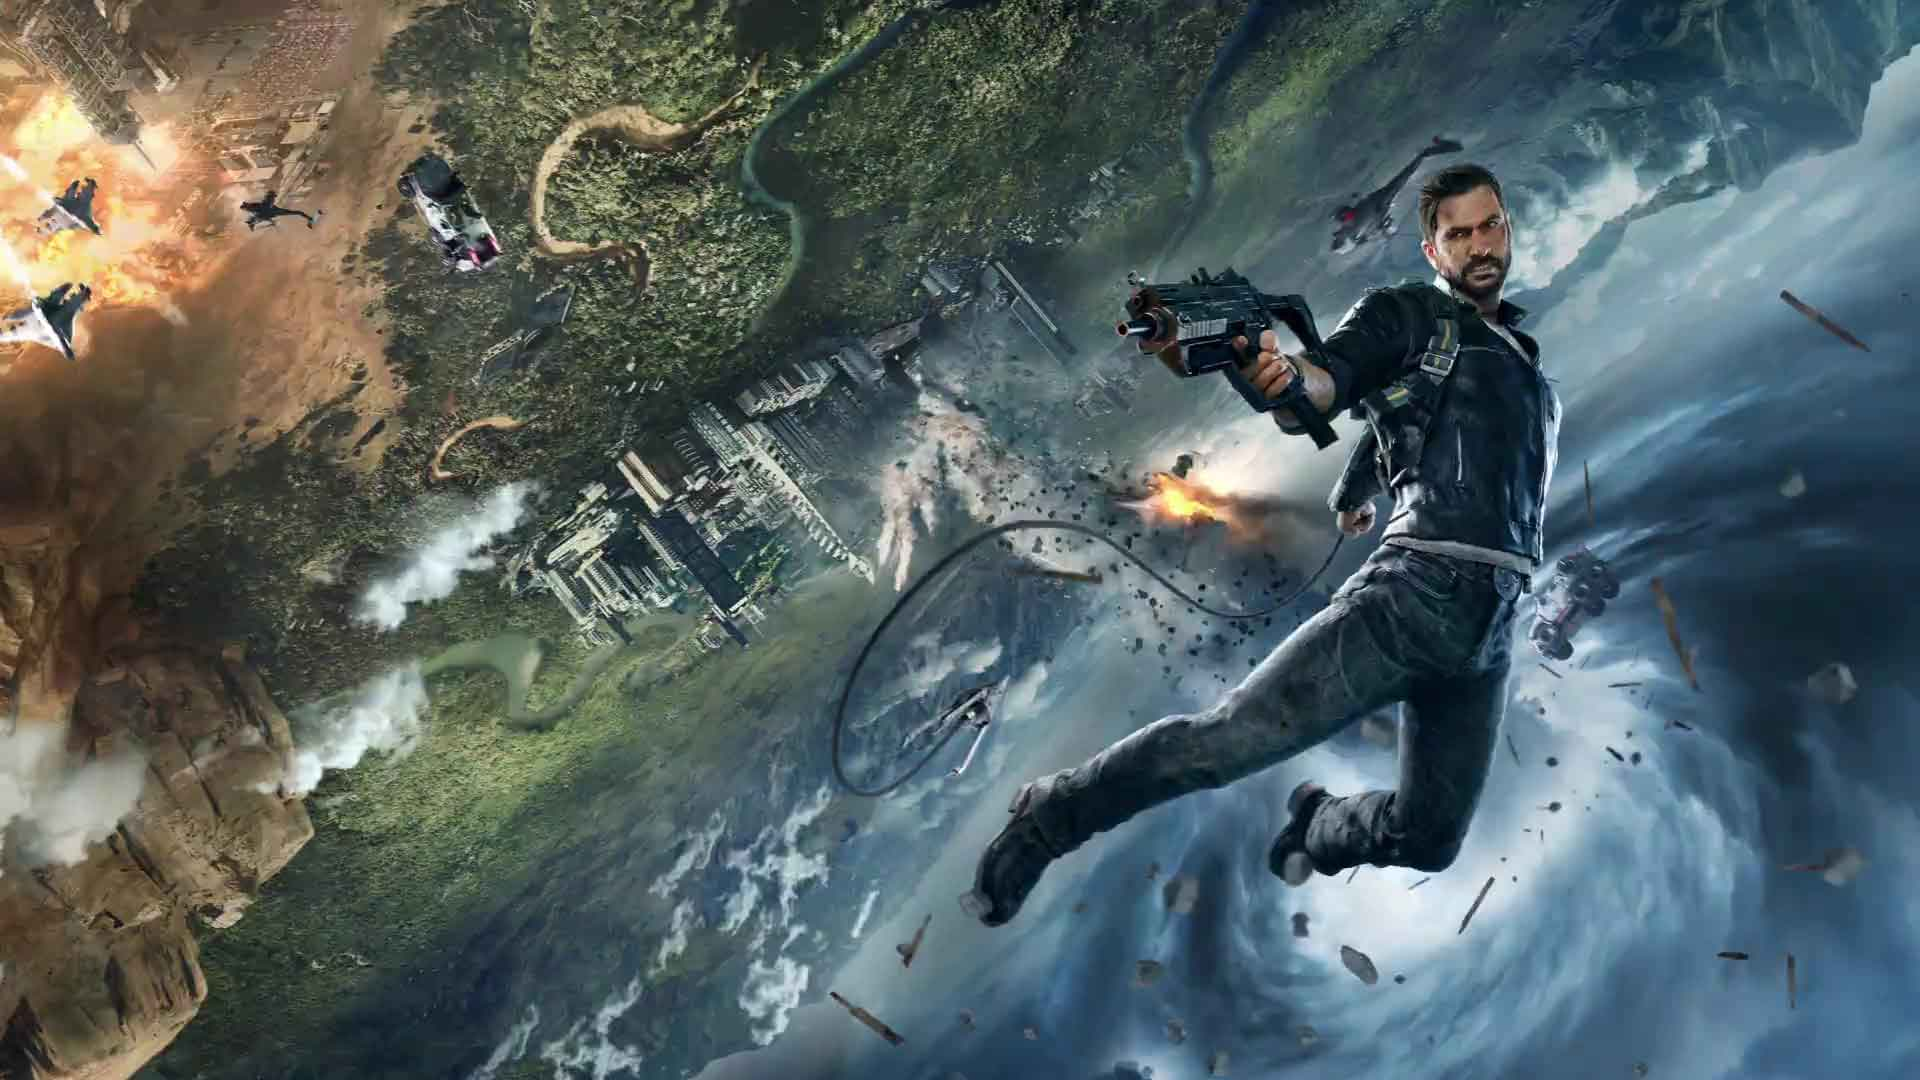 Just Cause 4 Wallpaper: E3 2018: Rico Rodriguez Is Back In Just Cause 4